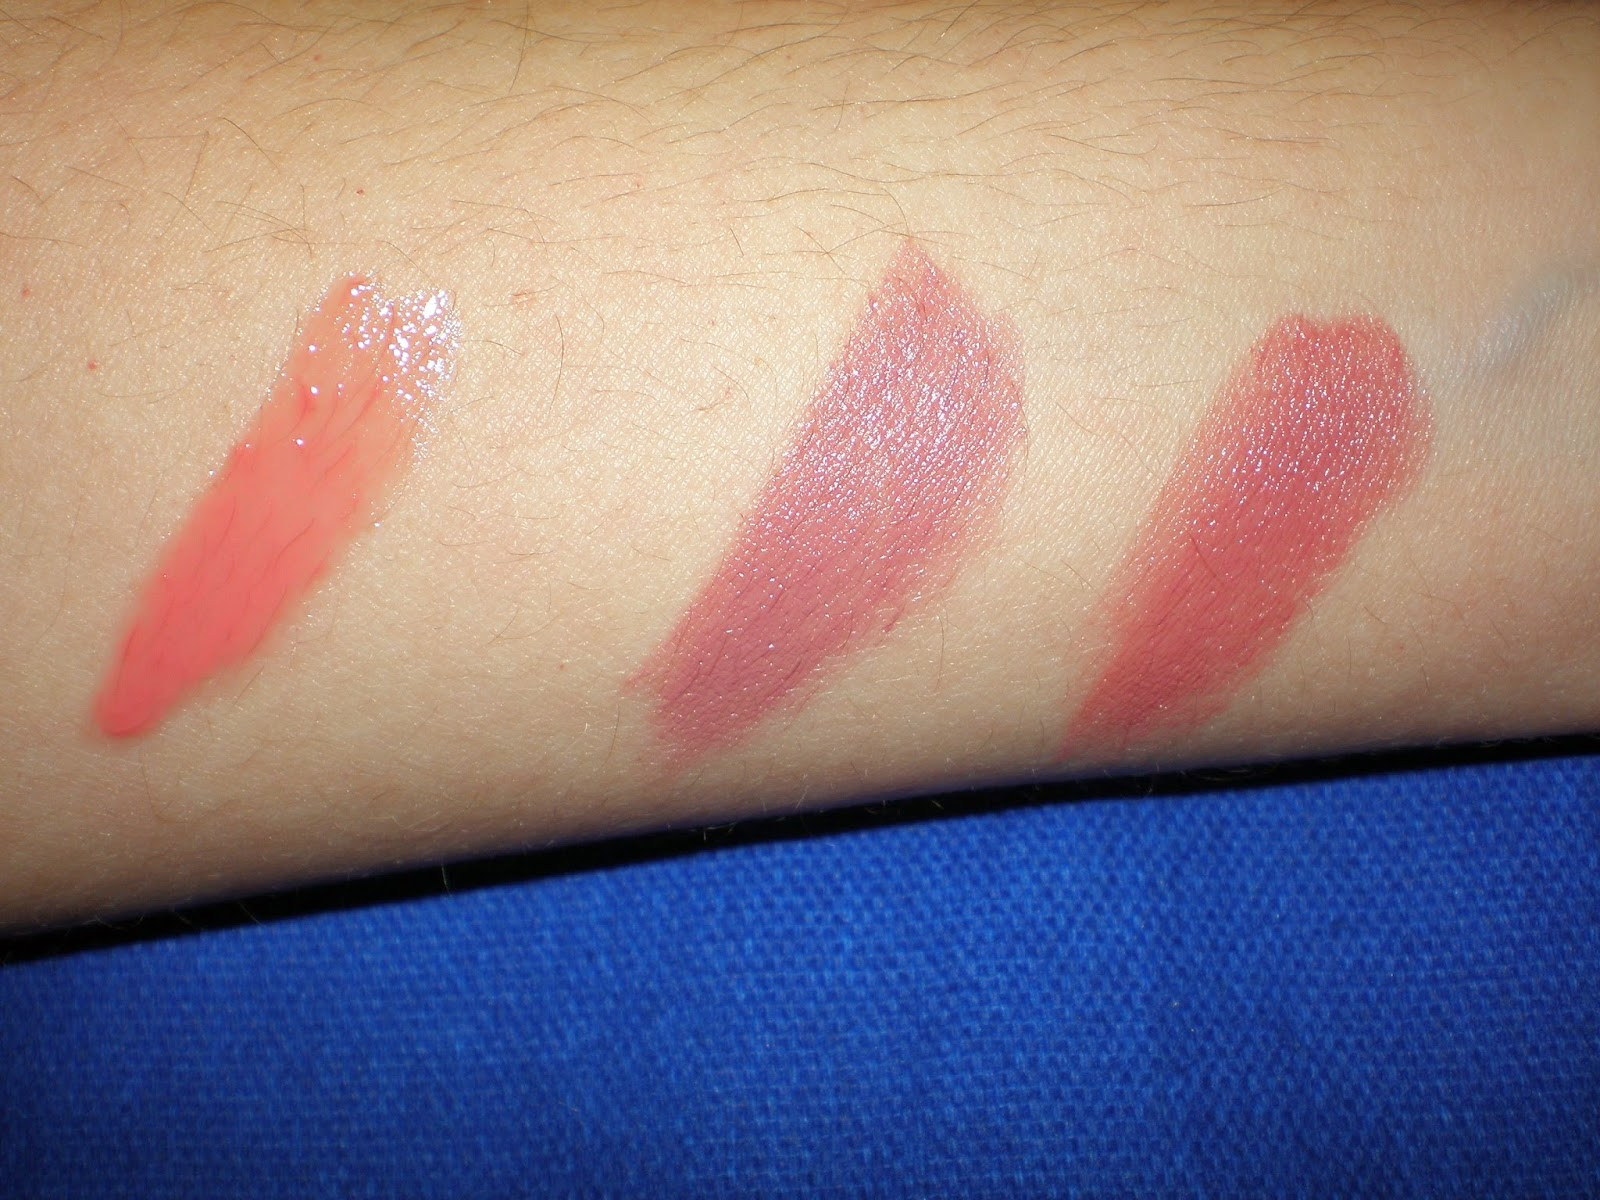 Left to Right: Lipgloss in 03 Taste the sweets, lipstick in 03 Come Naturally and 05 Cool Nude